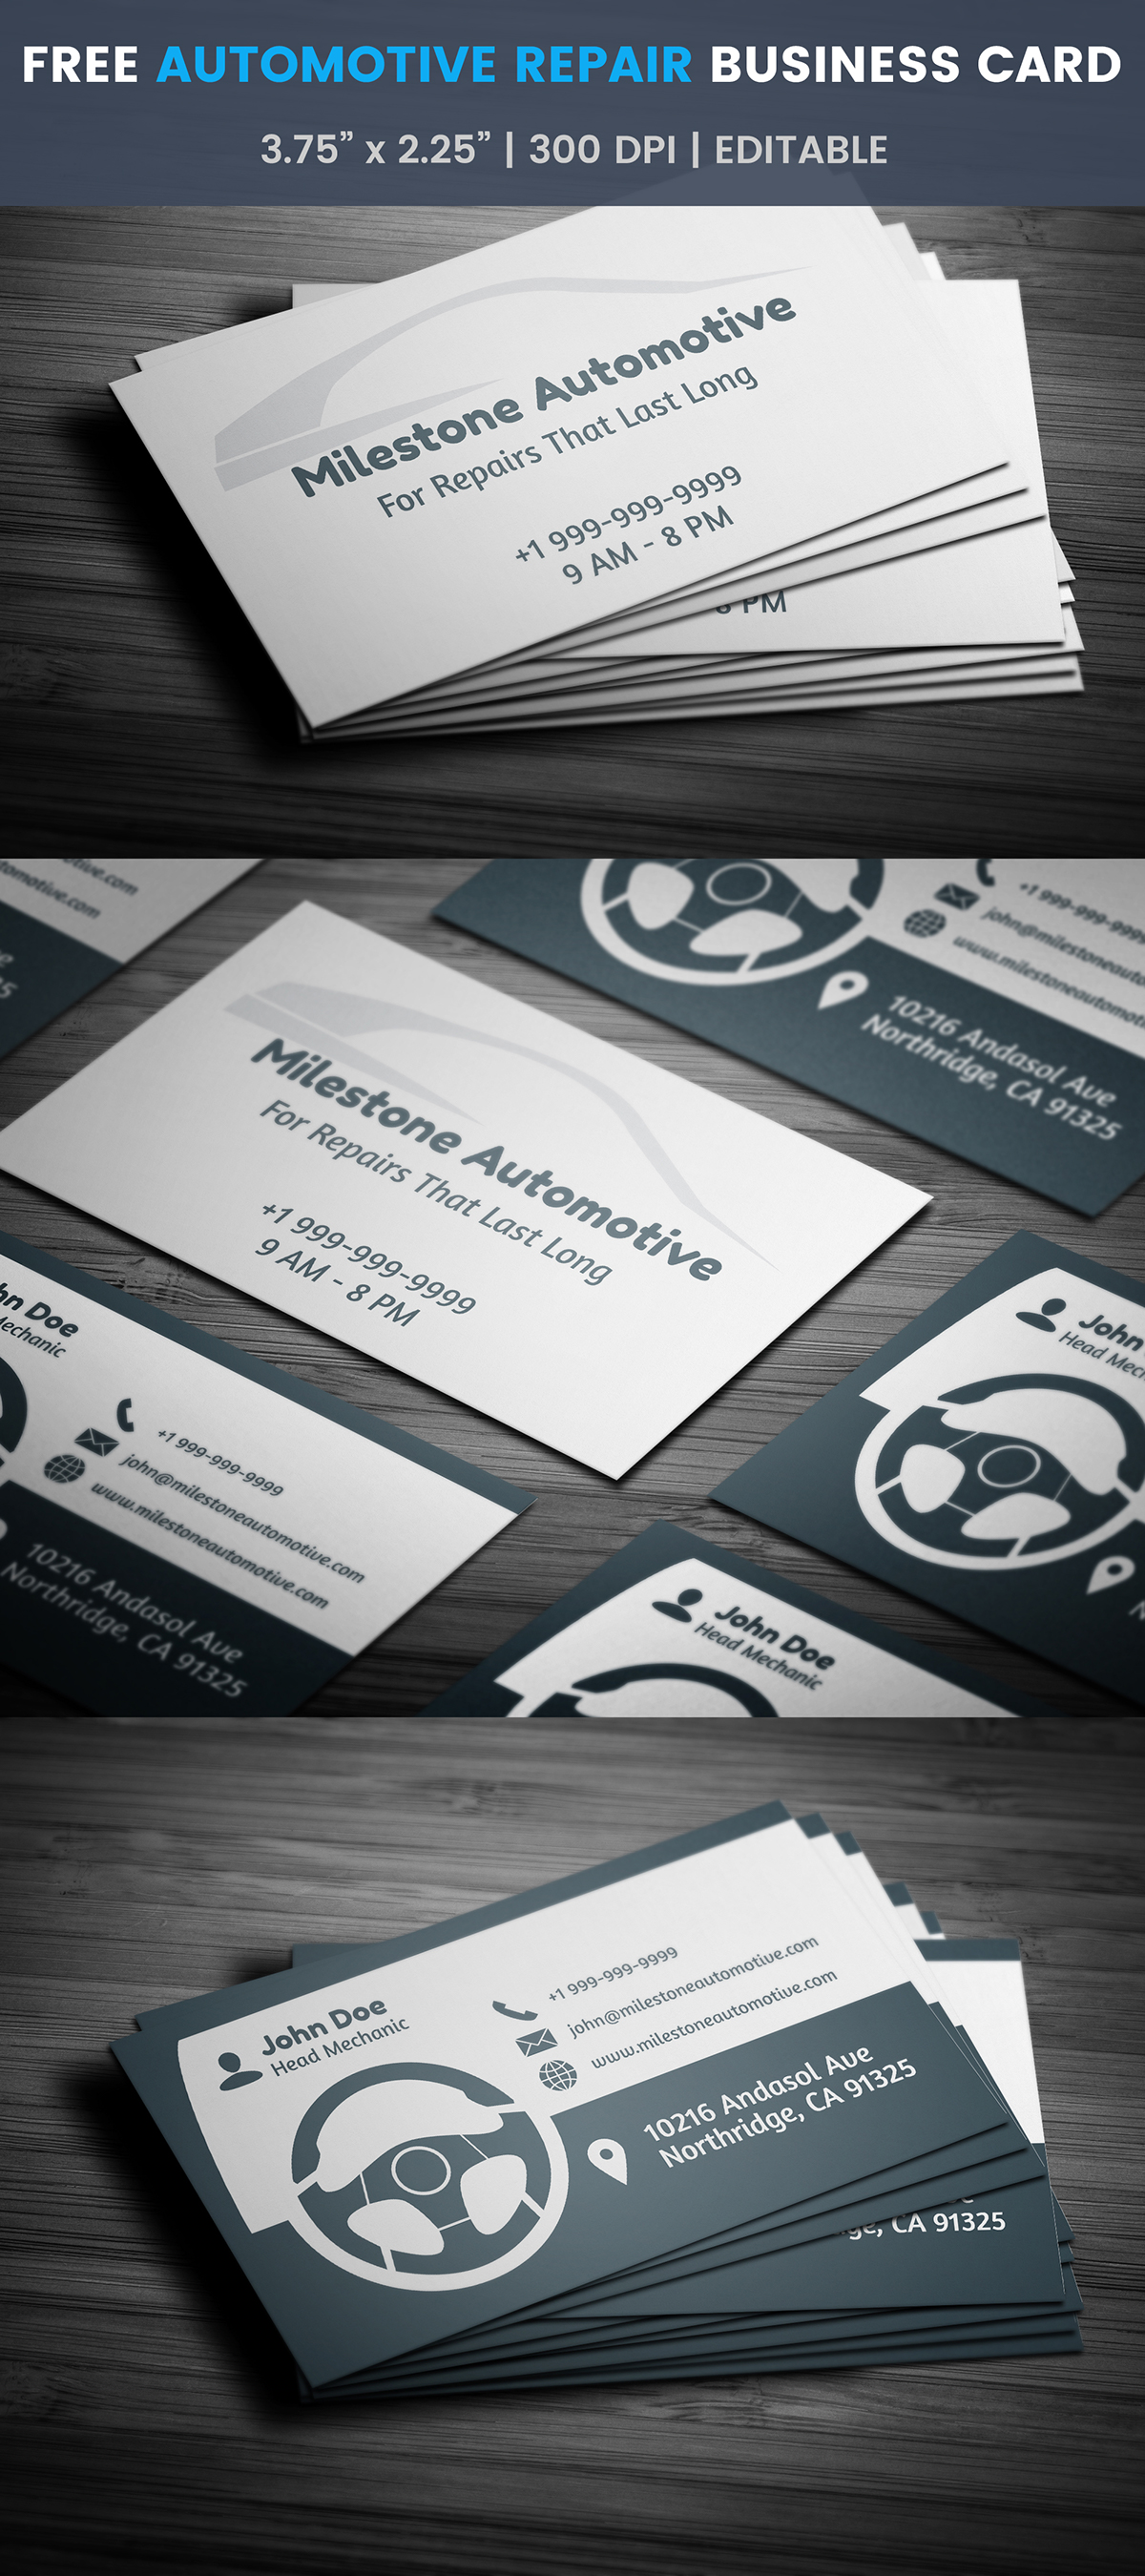 Free automotive business card template on student show free automotive business card template wajeb Choice Image